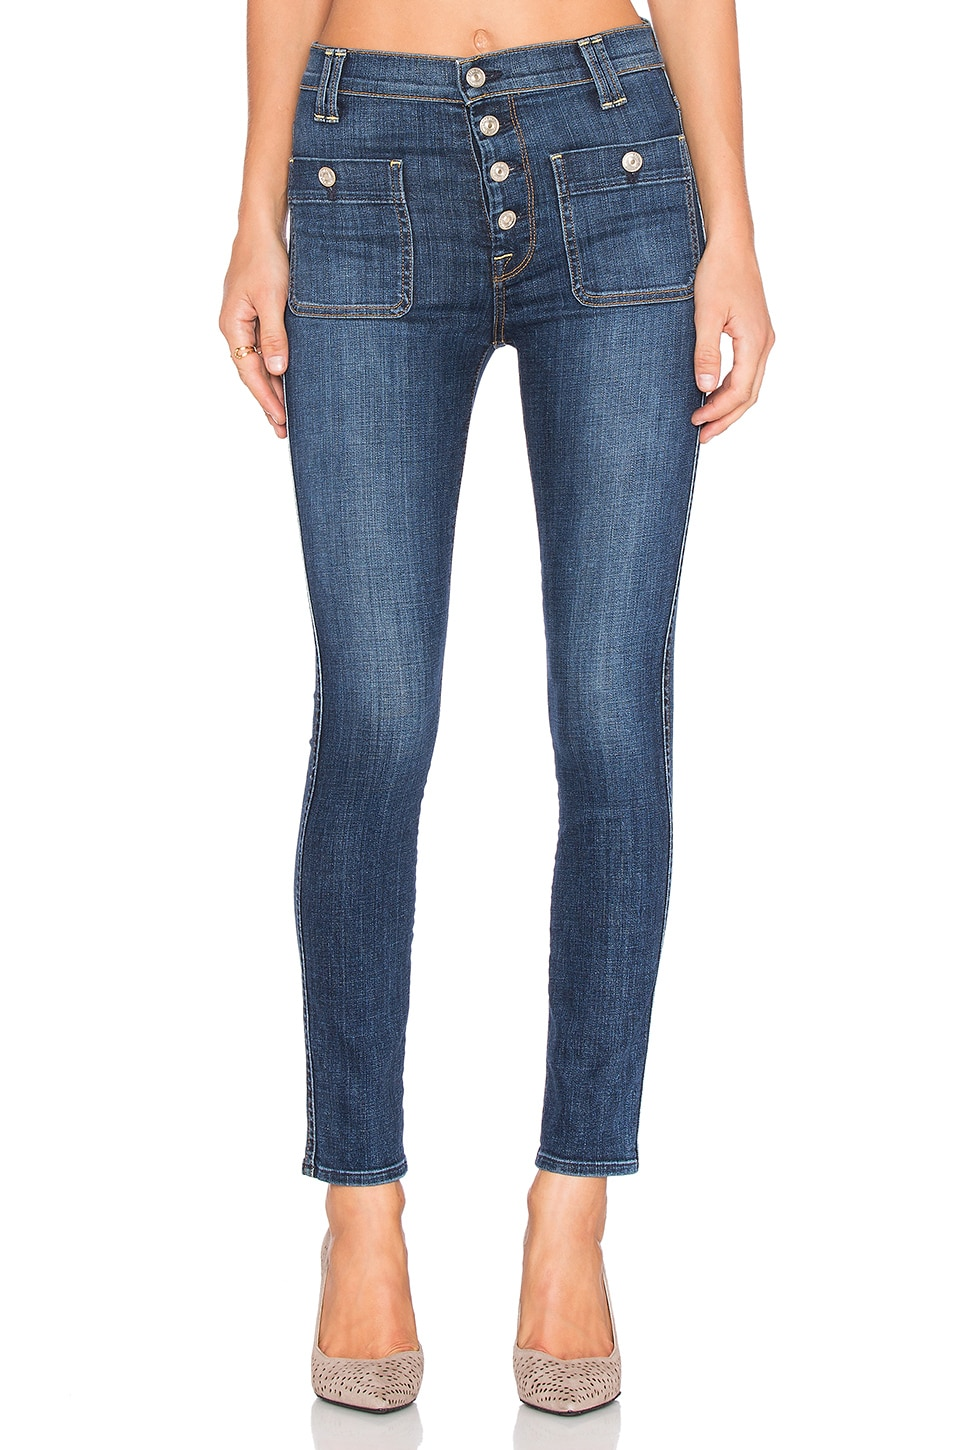 7 For All Mankind Exposed Button Skinny in La Palma 2